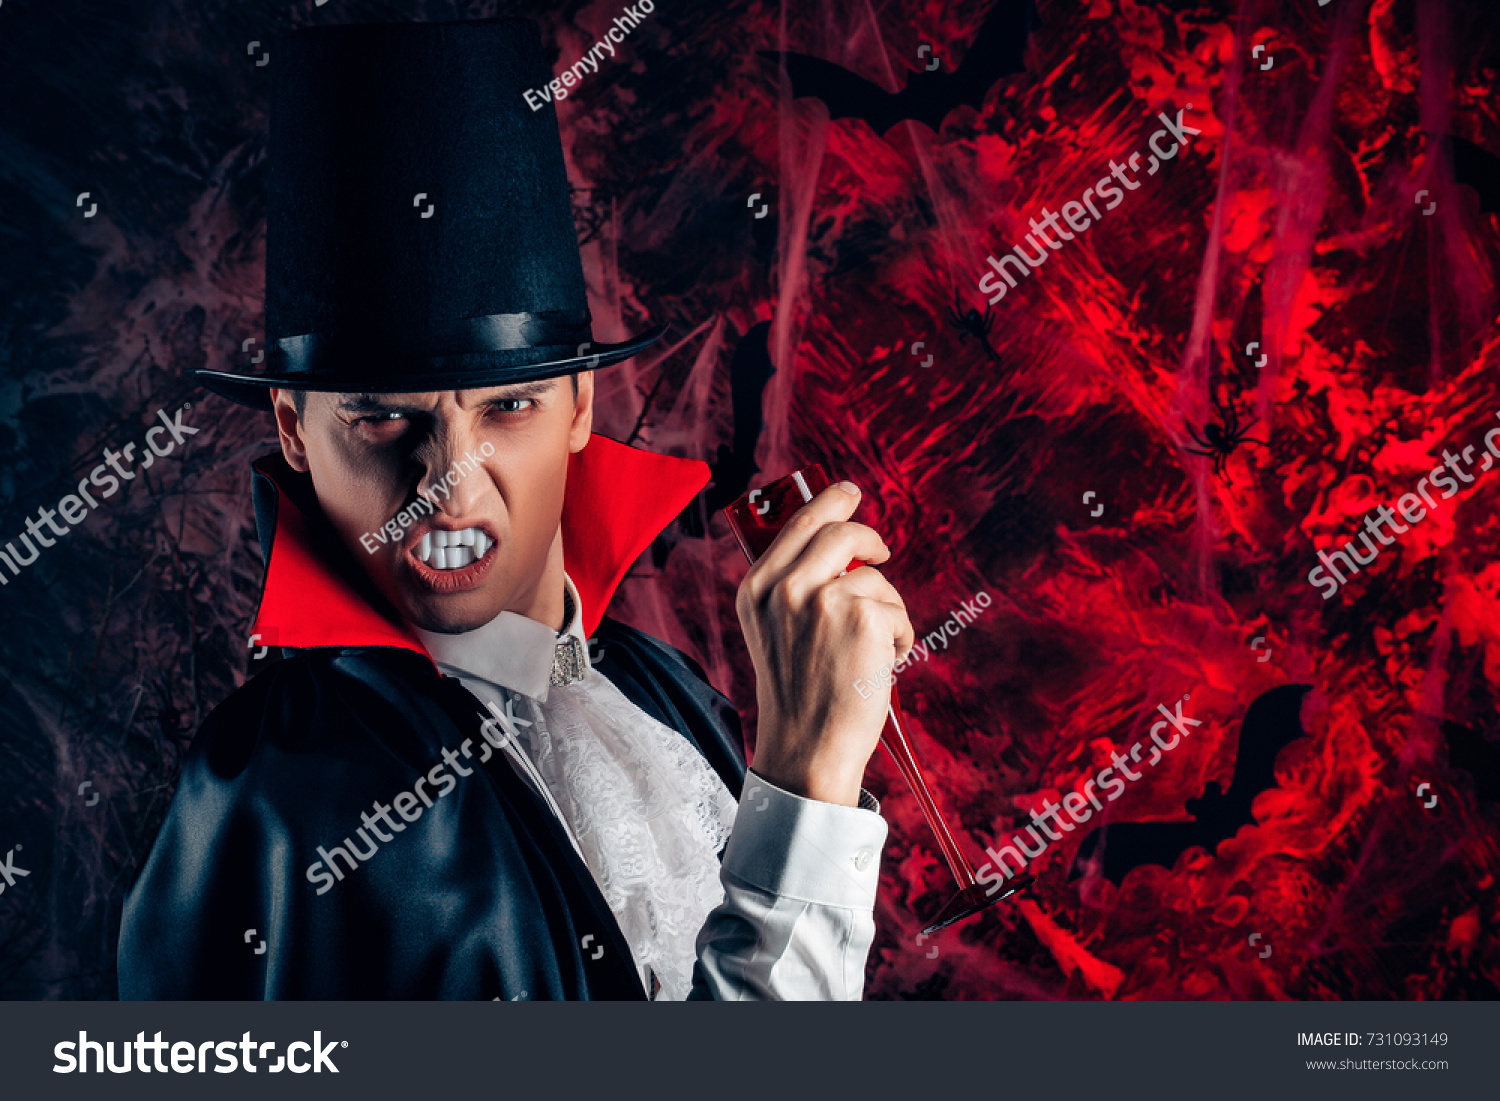 dfa36d9351 Portrait of handsome man dressed in a Dracula costume for Halloween. vampire  holds a glass